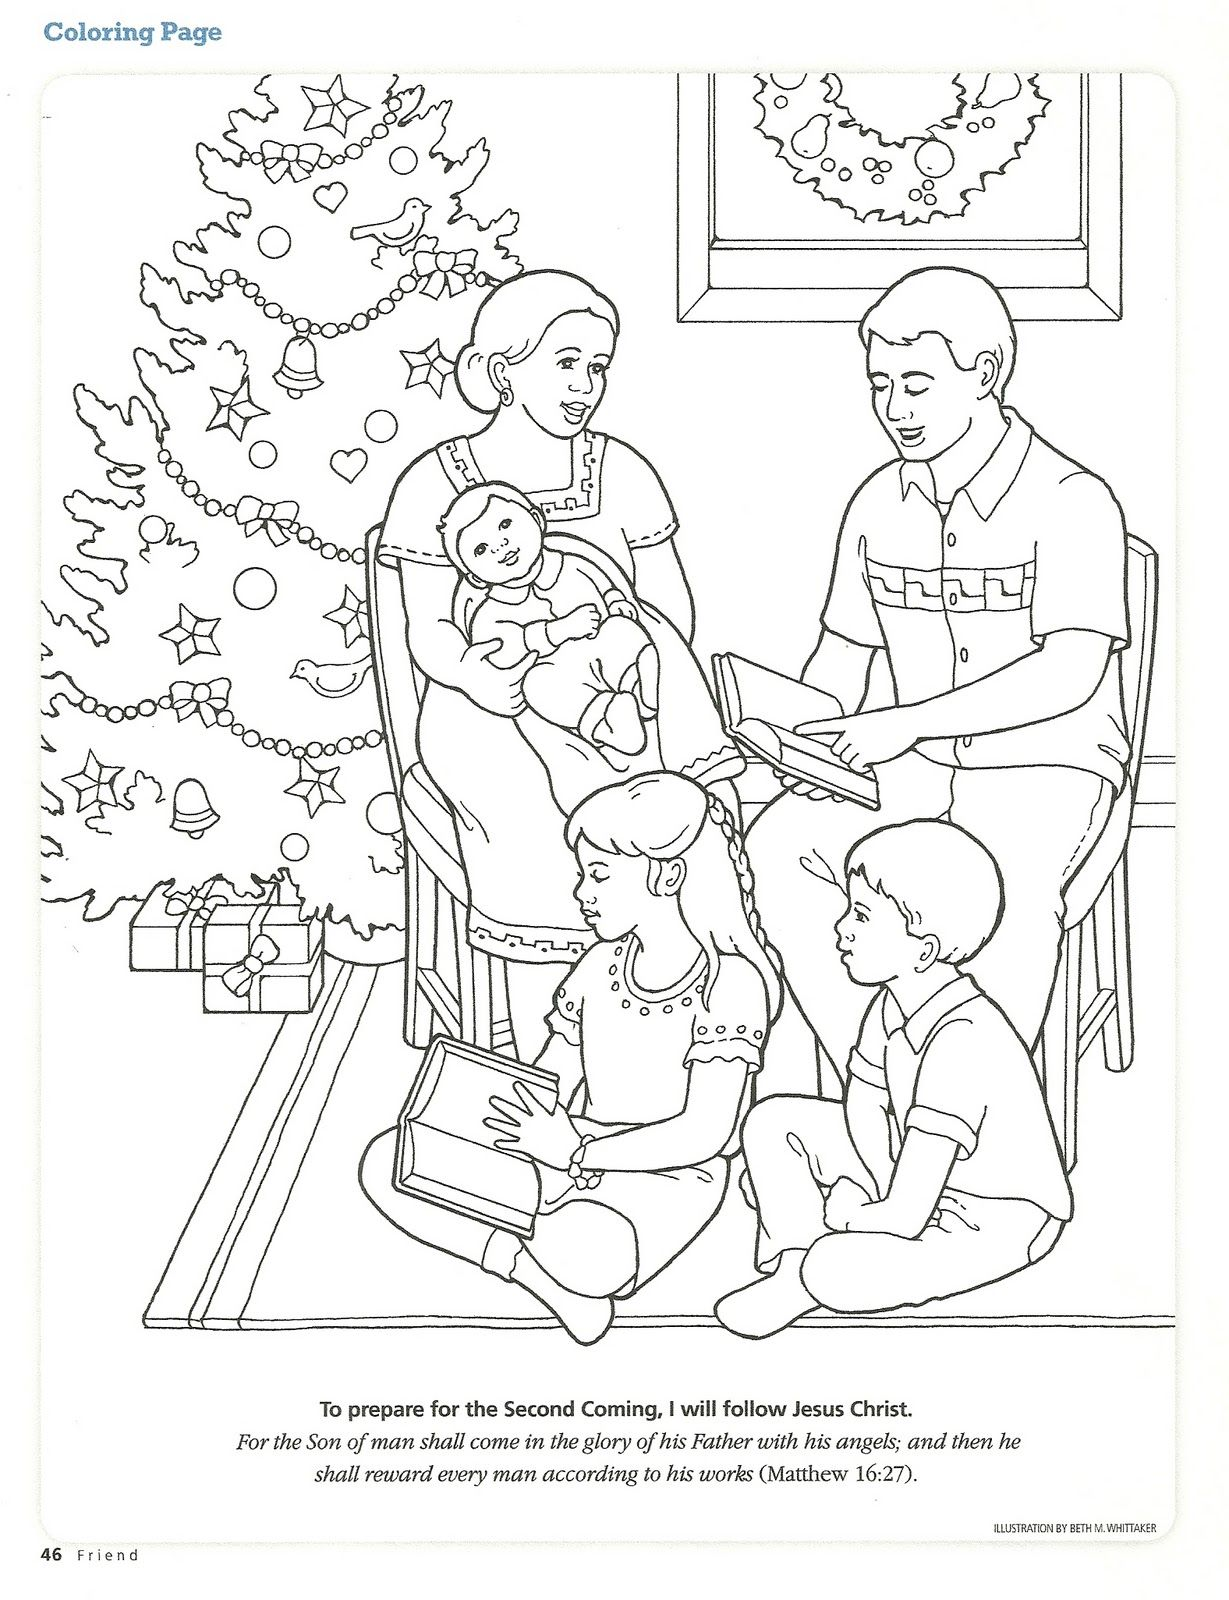 Happy Clean Living Primary 2 Lesson 46 Christmas Family Coloring Pages Coloring Pages Printable Christmas Coloring Pages